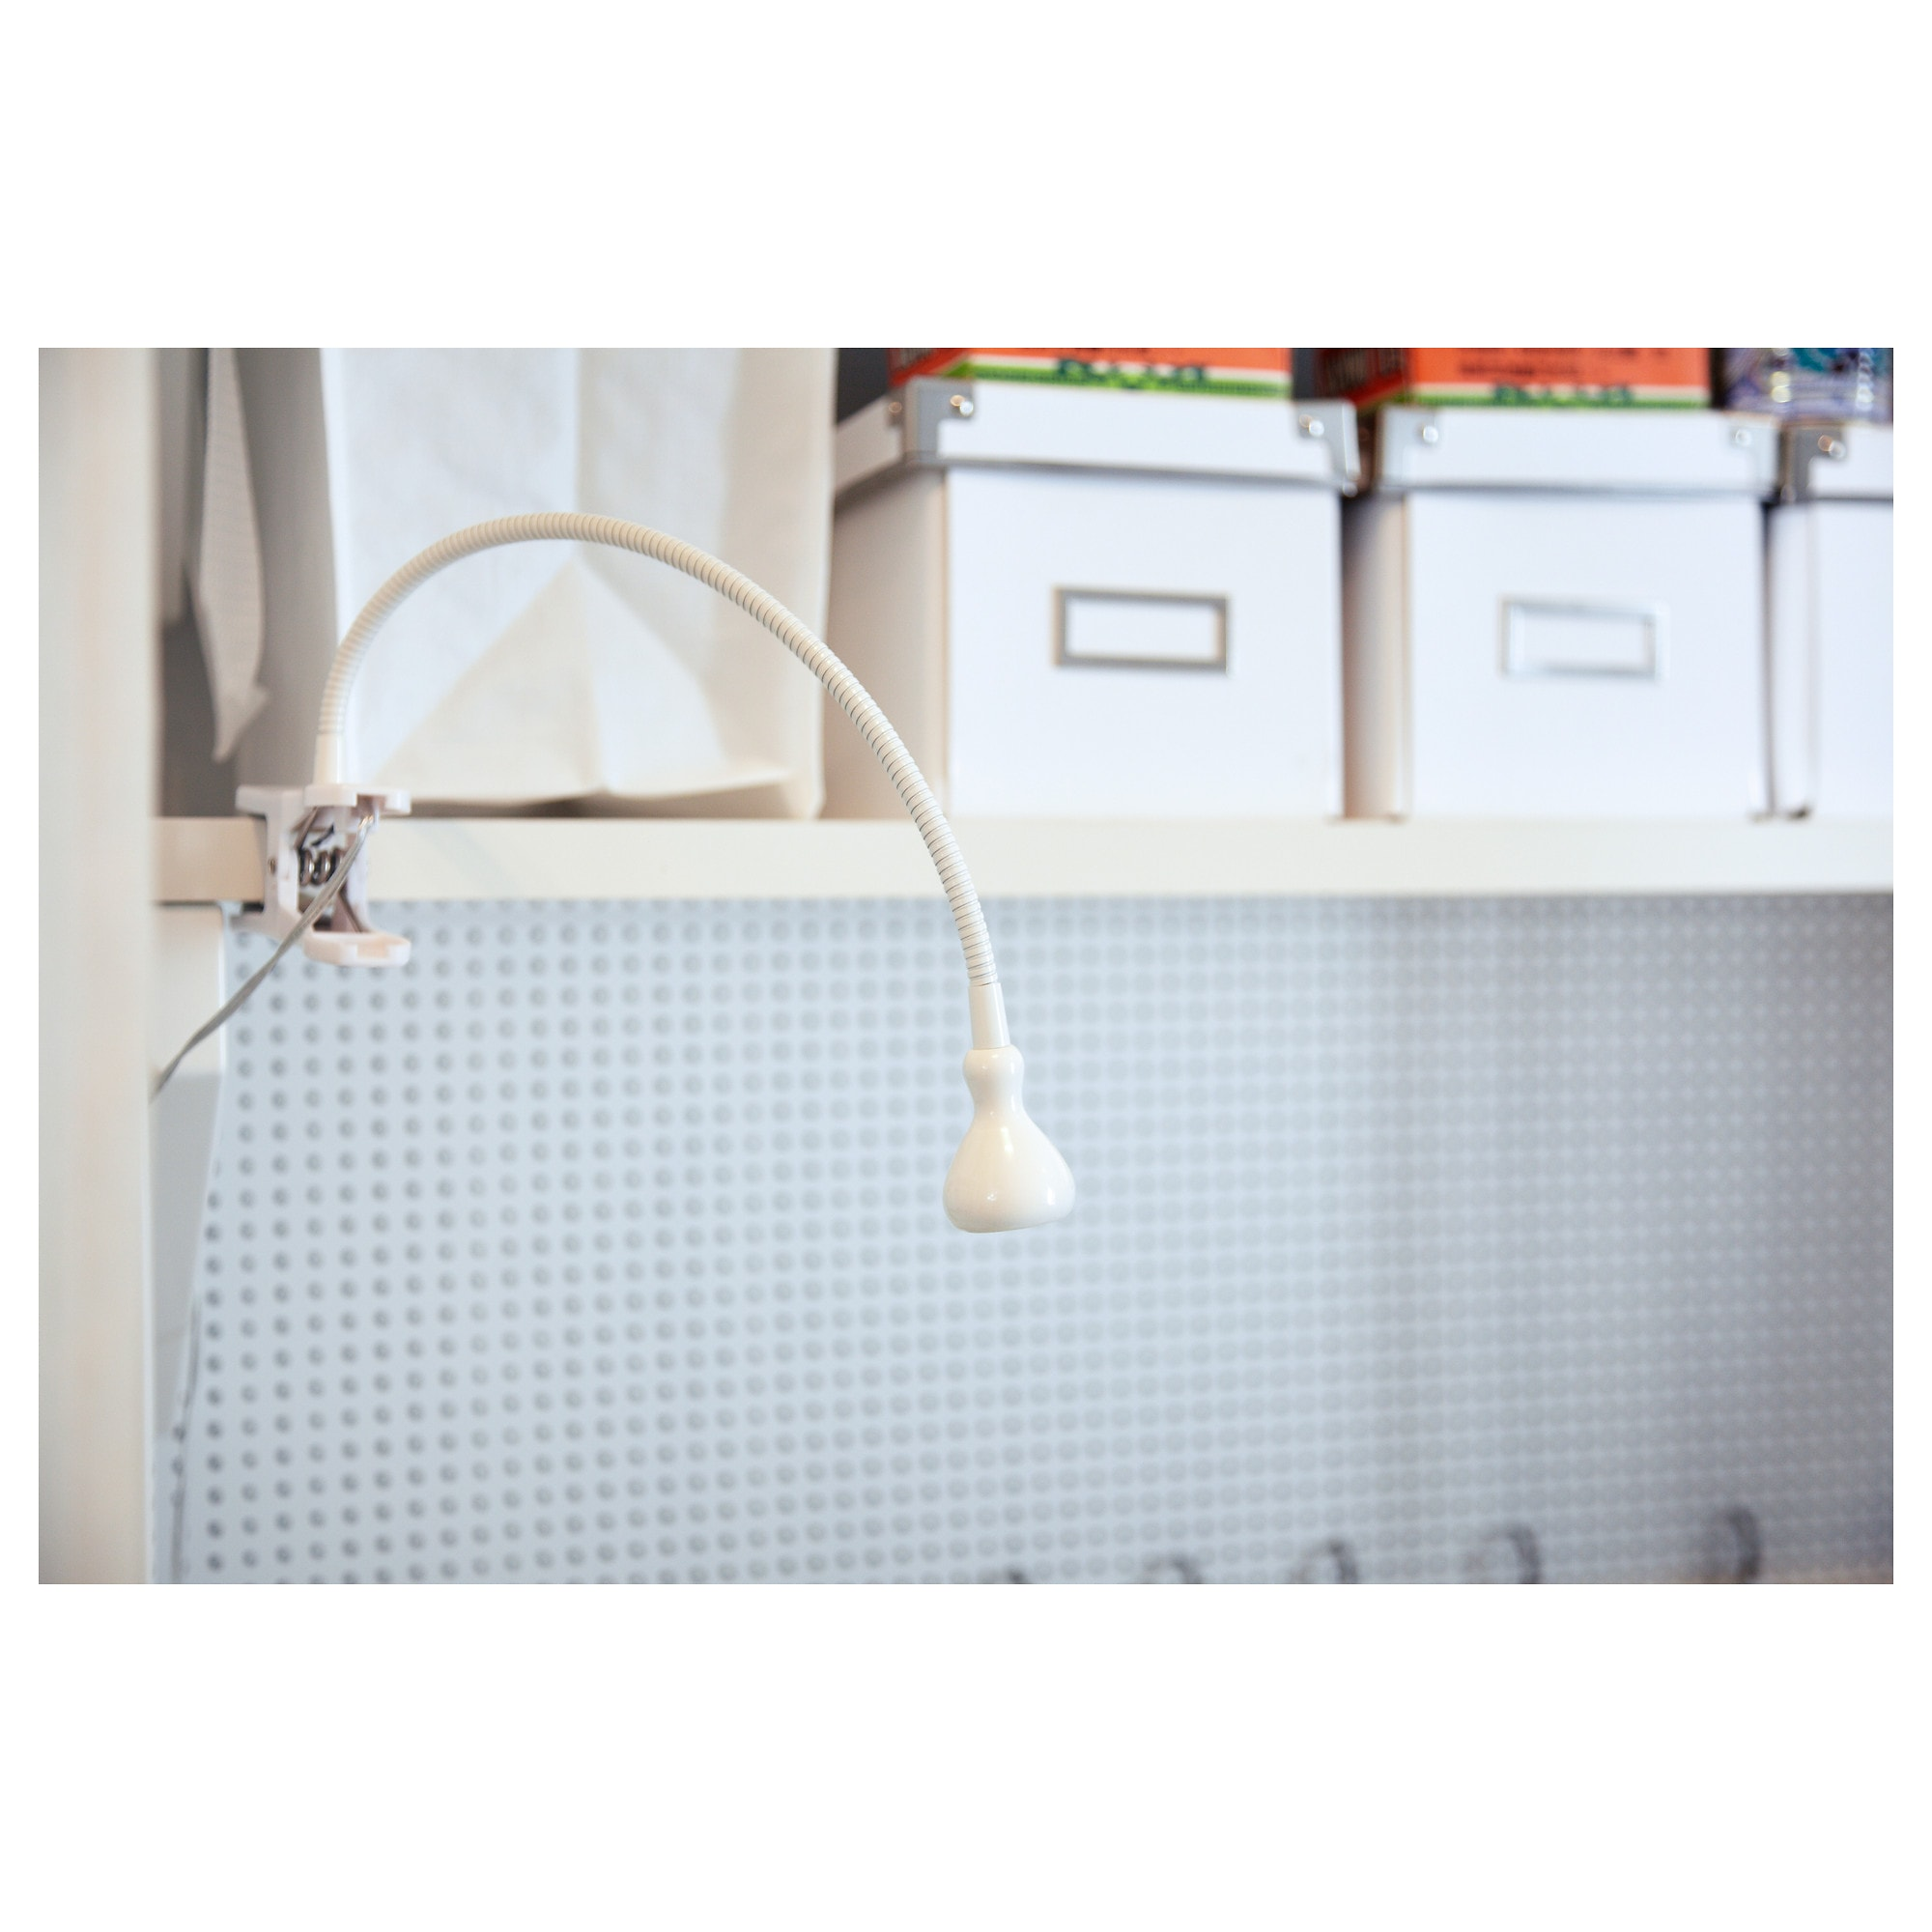 jansjà led wall clamp spotlight white ikea